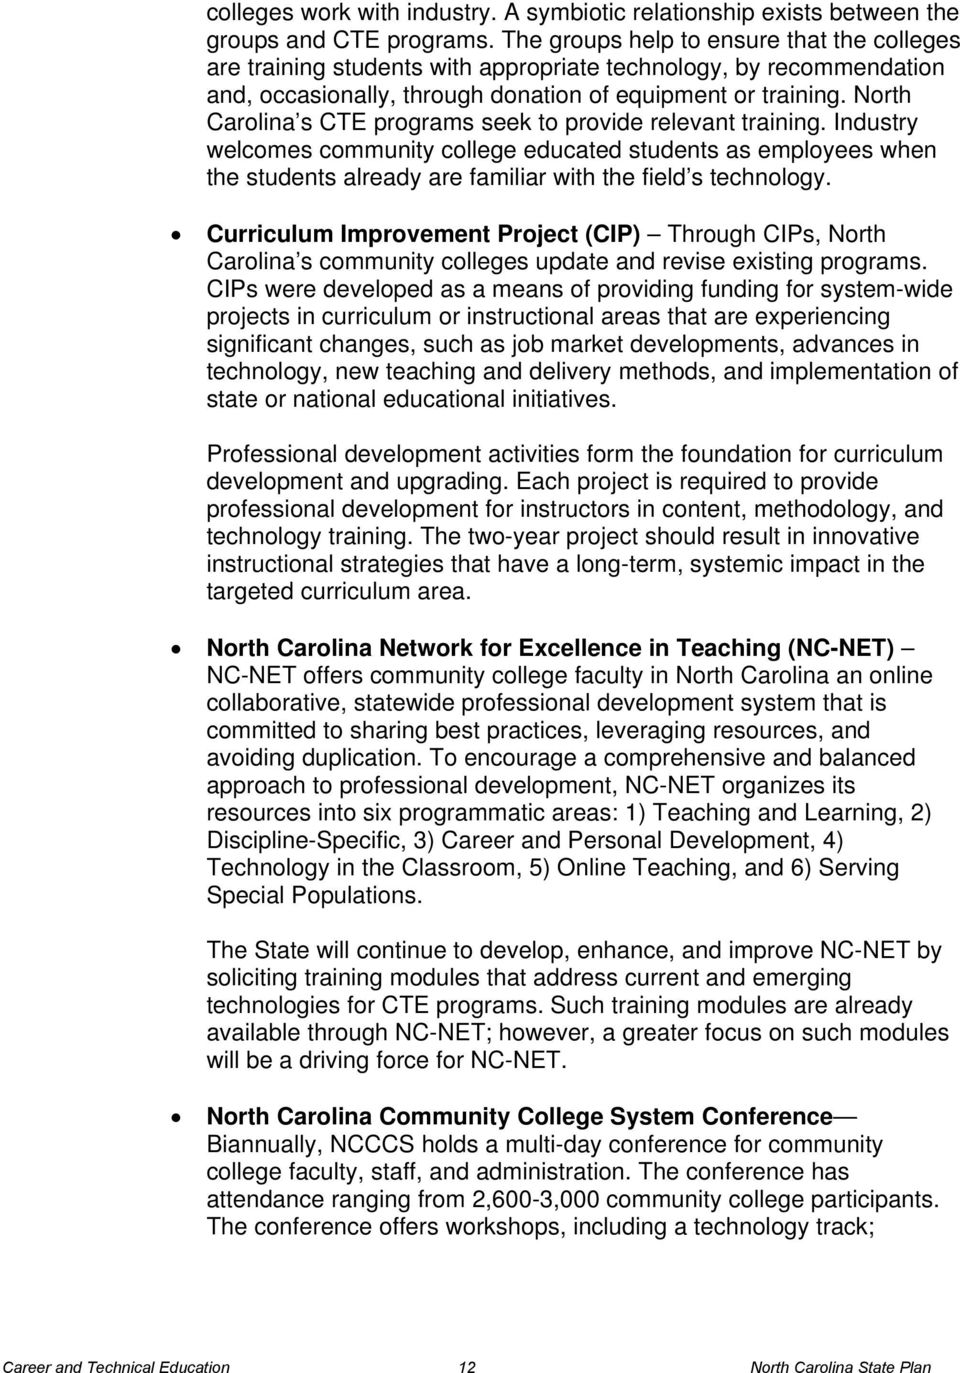 North Carolina s CTE programs seek to provide relevant training. Industry welcomes community college educated students as employees when the students already are familiar with the field s technology.